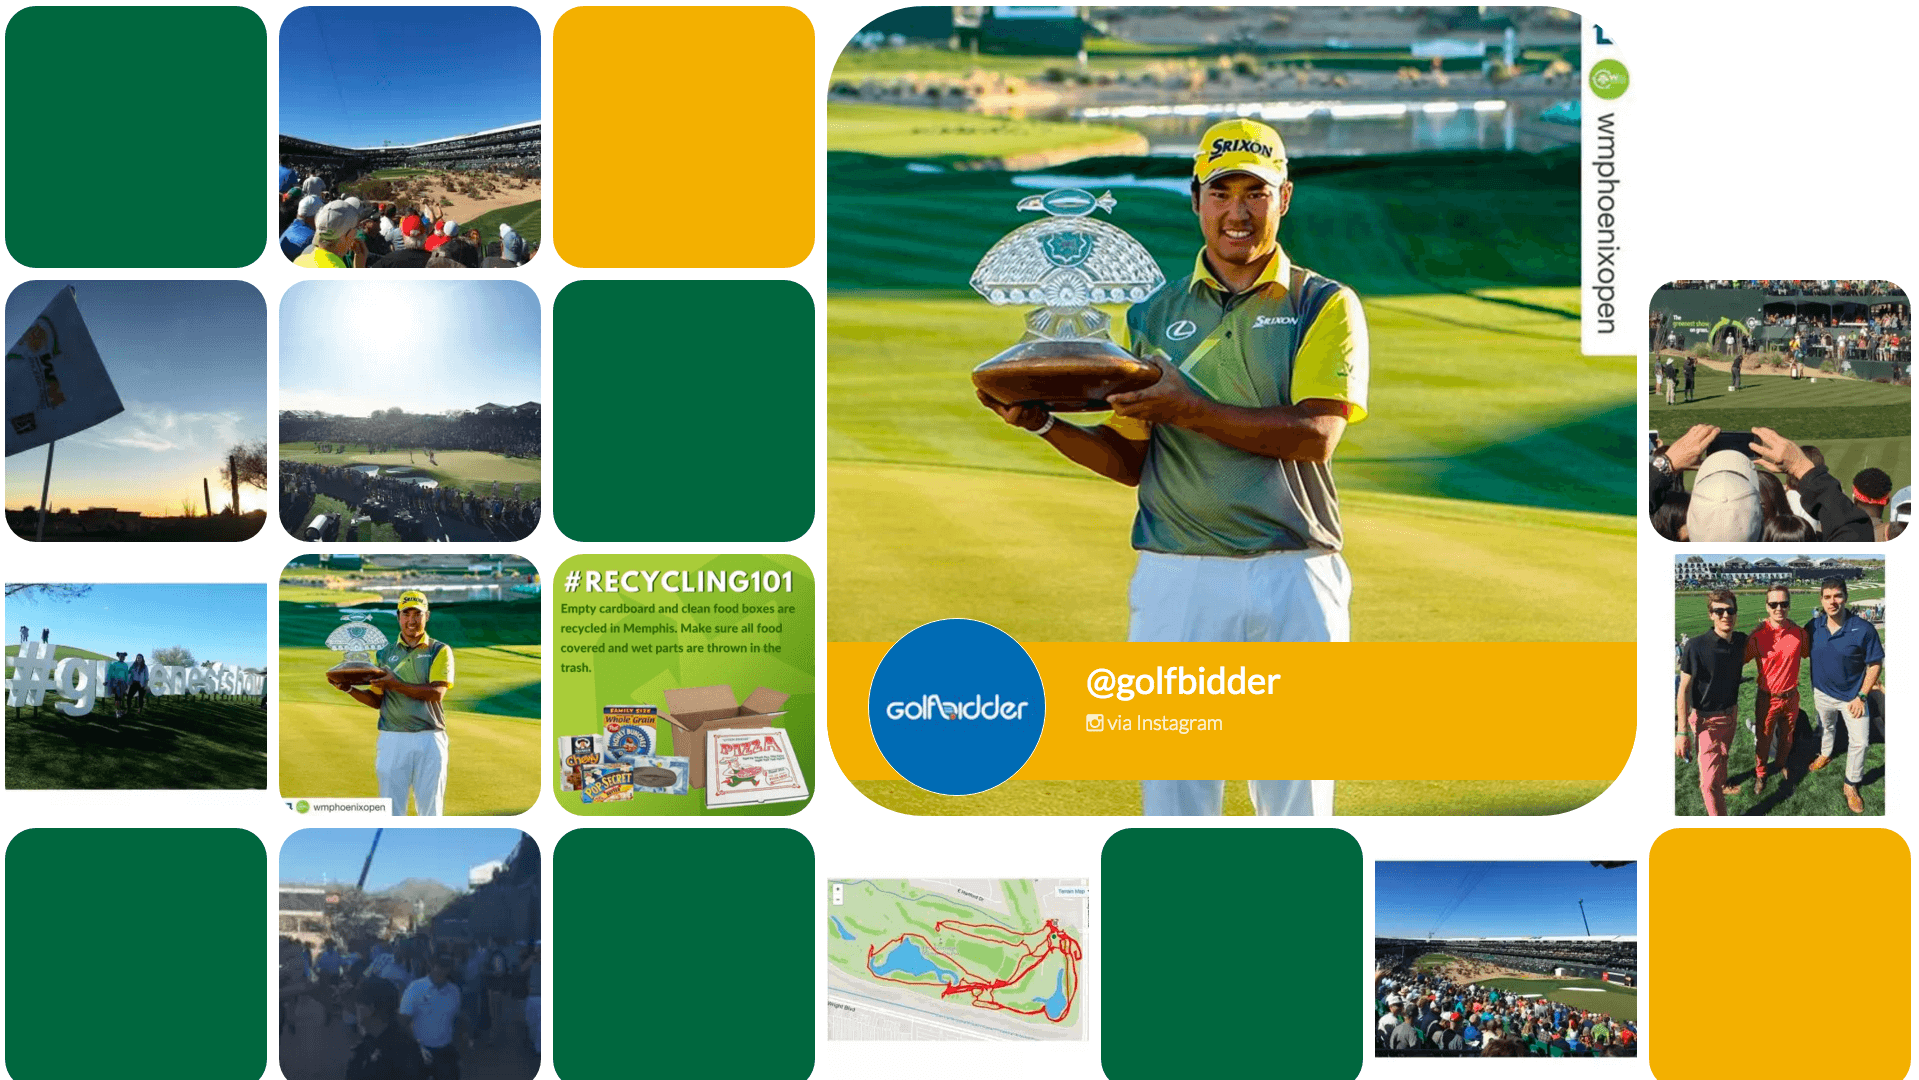 instagram twitter display wall phoenix open